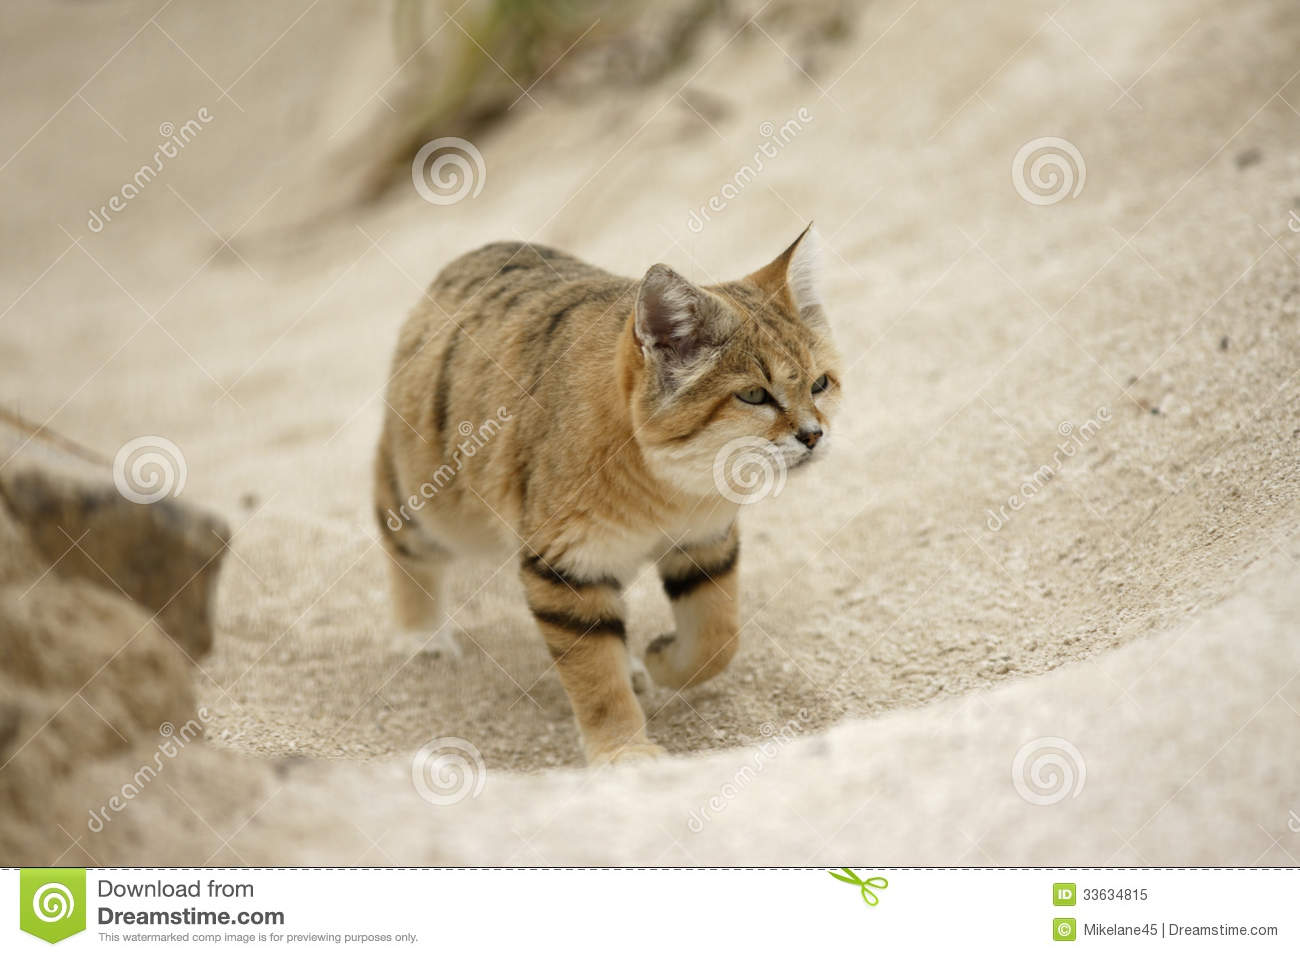 Sand Cat clipart #5, Download drawings